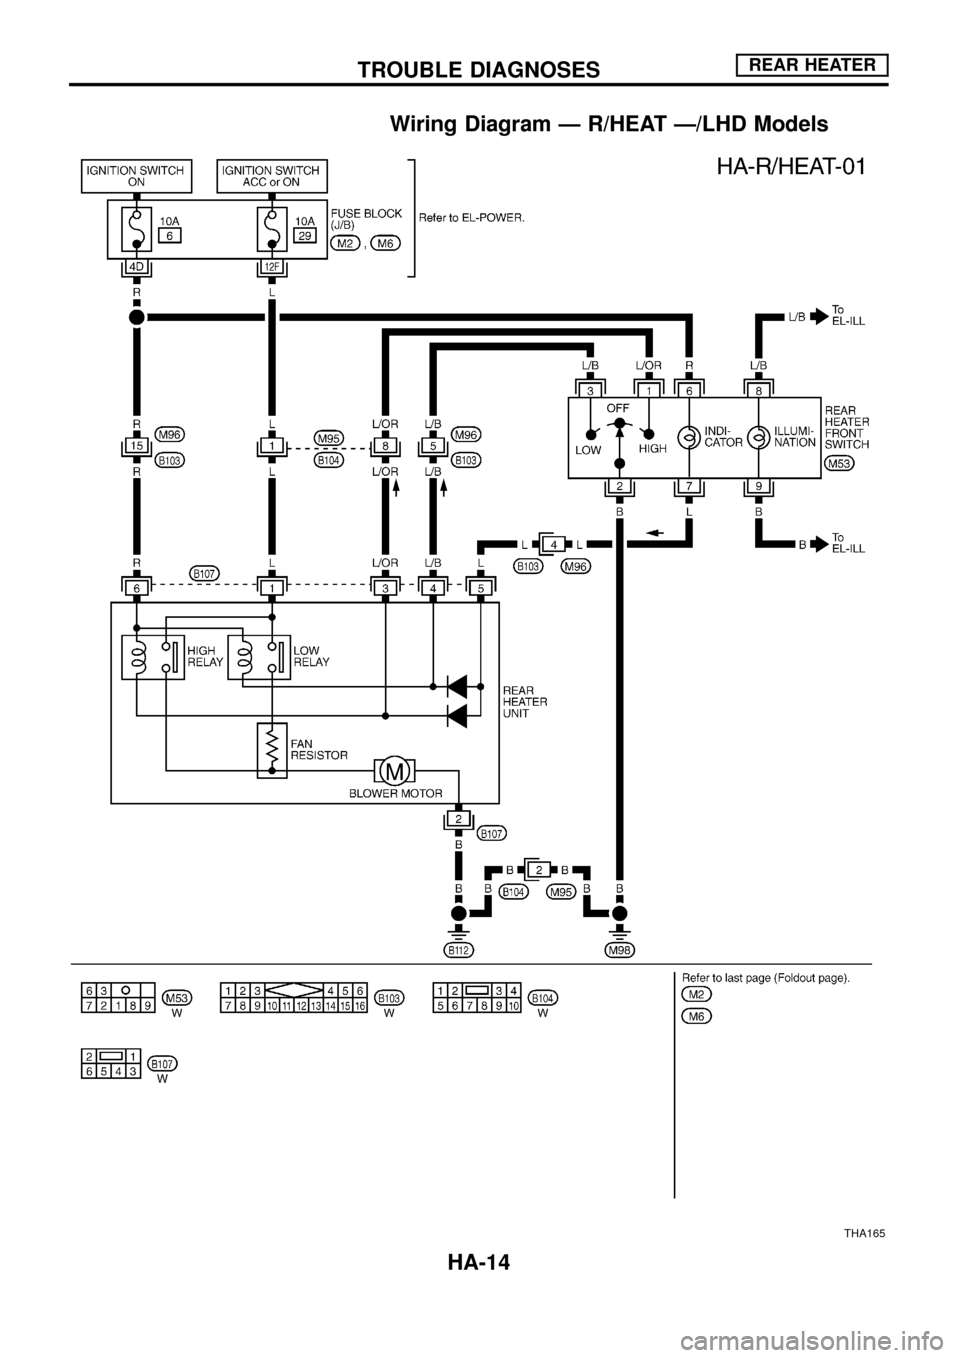 Wiring Harness Nissan Patrol Auto Electrical Diagram Related With